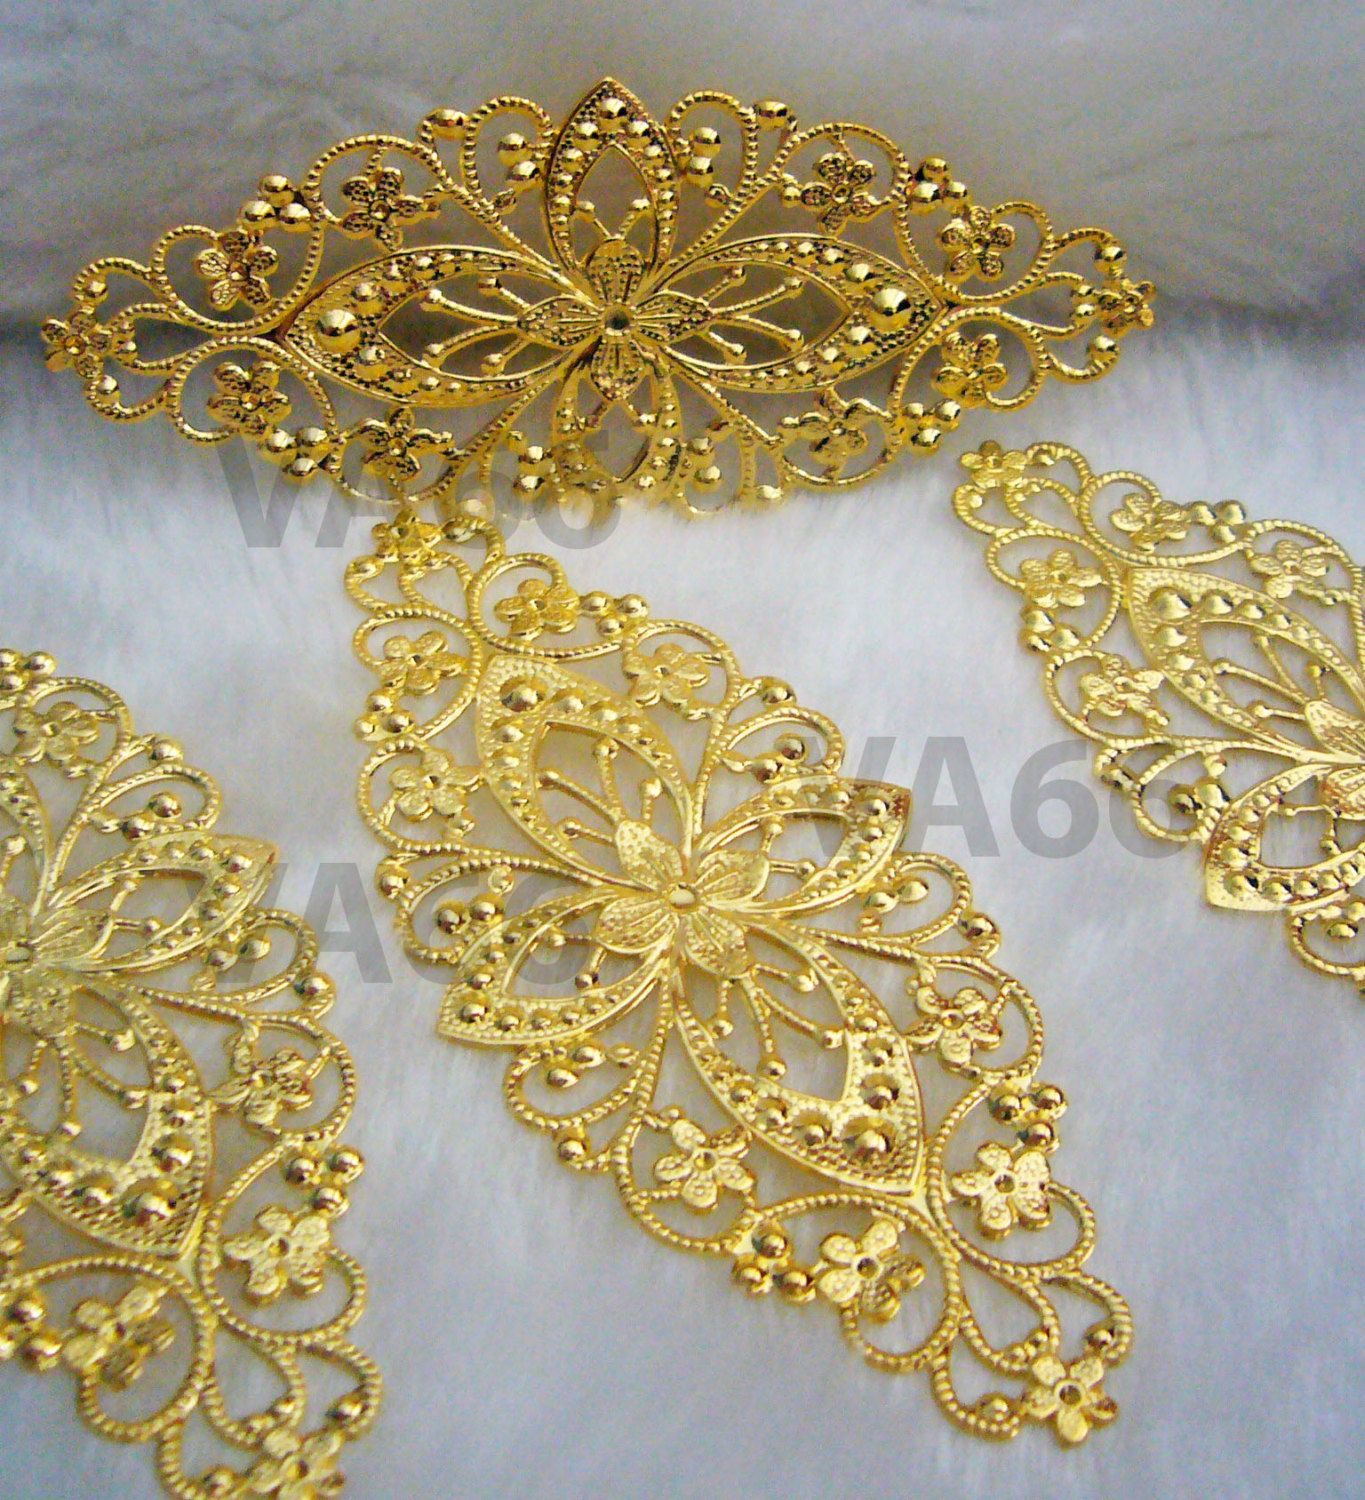 Diy gold filigree lace extension chandelier earrings necklace parts diy gold filigree lace extension chandelier earrings necklace parts 4 diy findings jewelry making parts spare aloadofball Choice Image